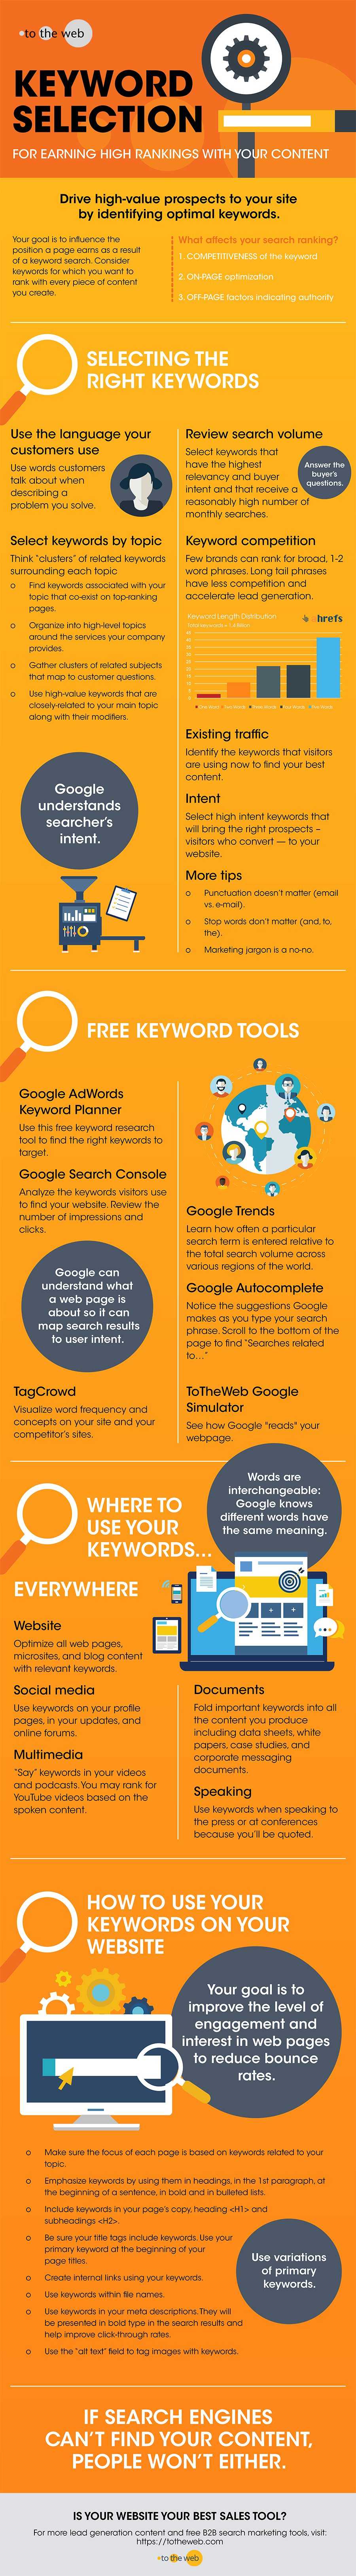 SEO for Beginners: How to Choose & Use Keywords for Higher Rankings [Infographic]